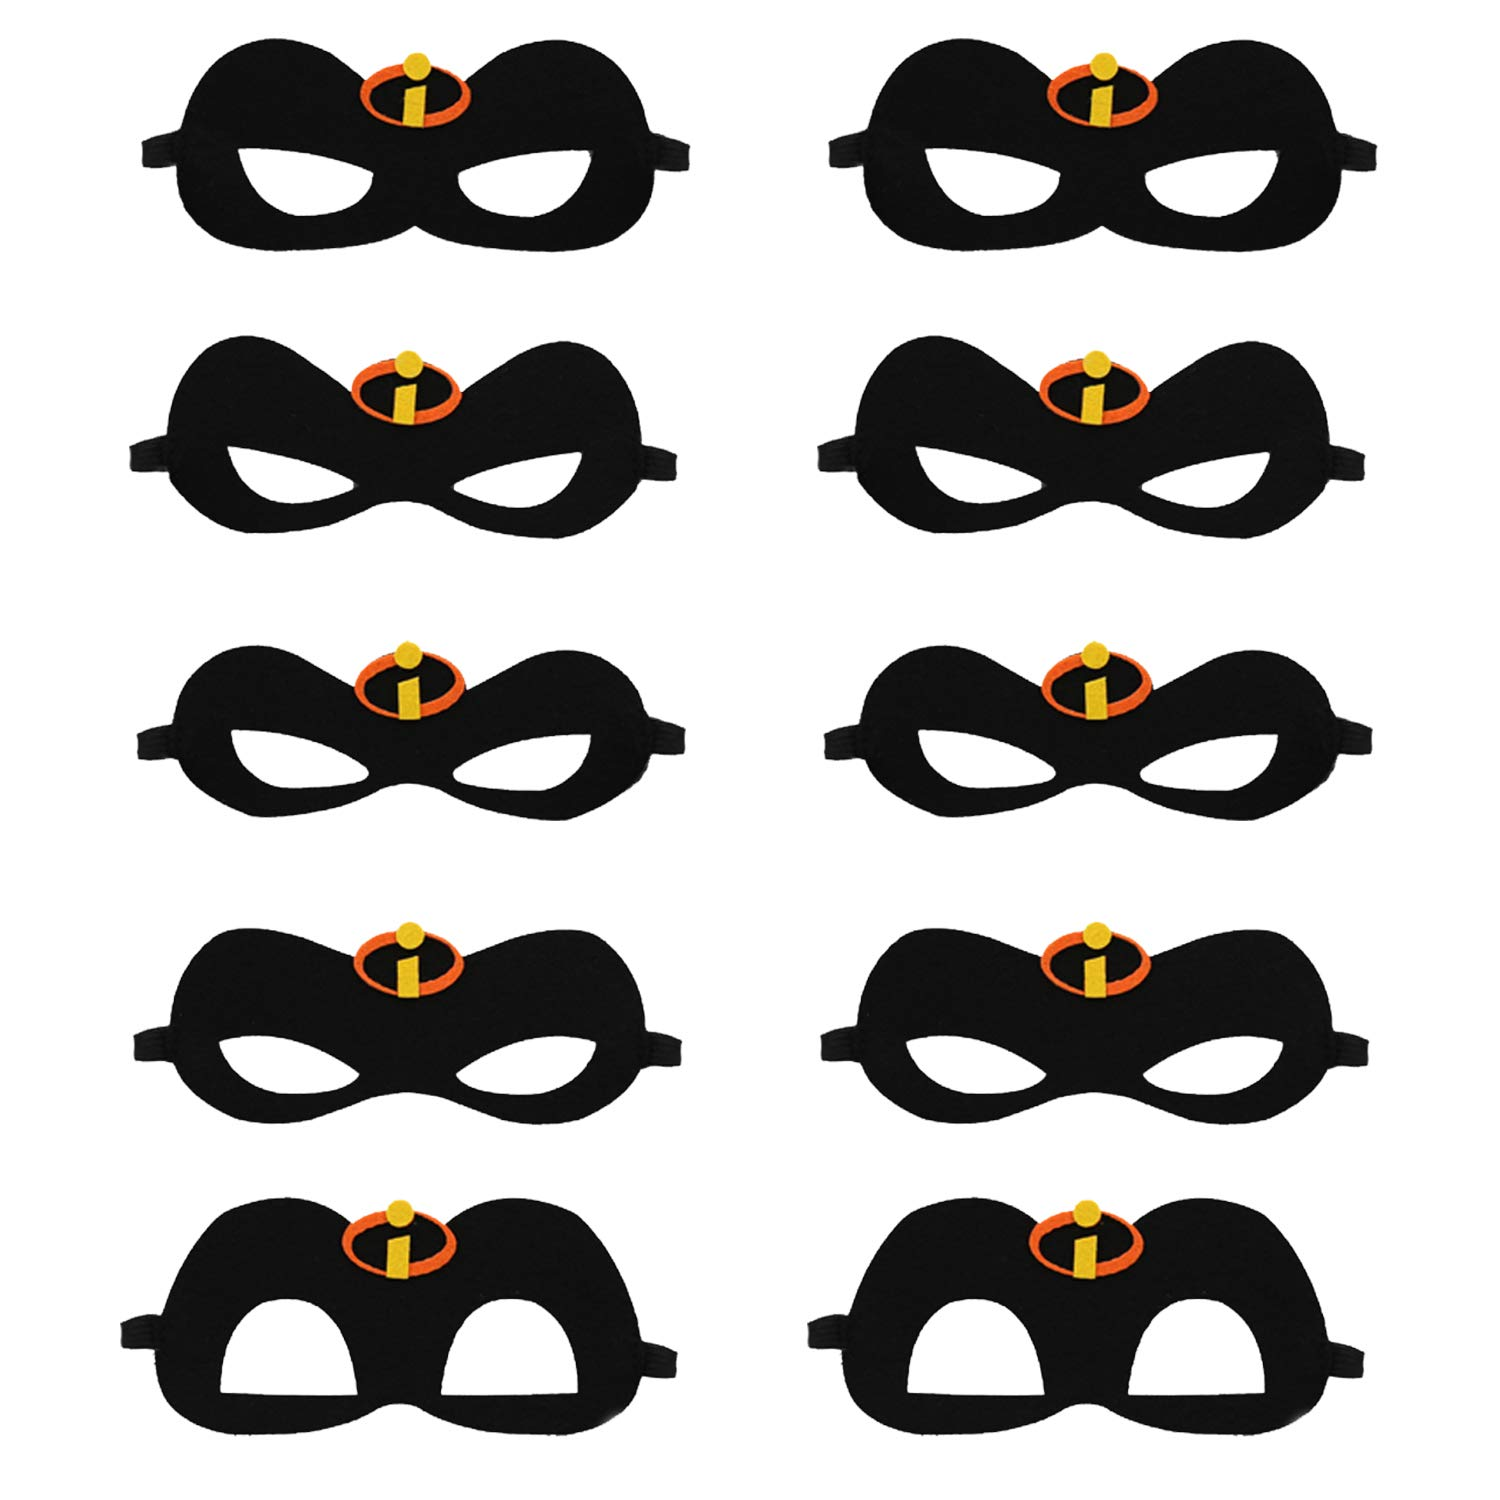 10 PCS The Incredibles 2 Inspired Family Eye Masks Halloween Masks Party Supplies Black by Kitticcino